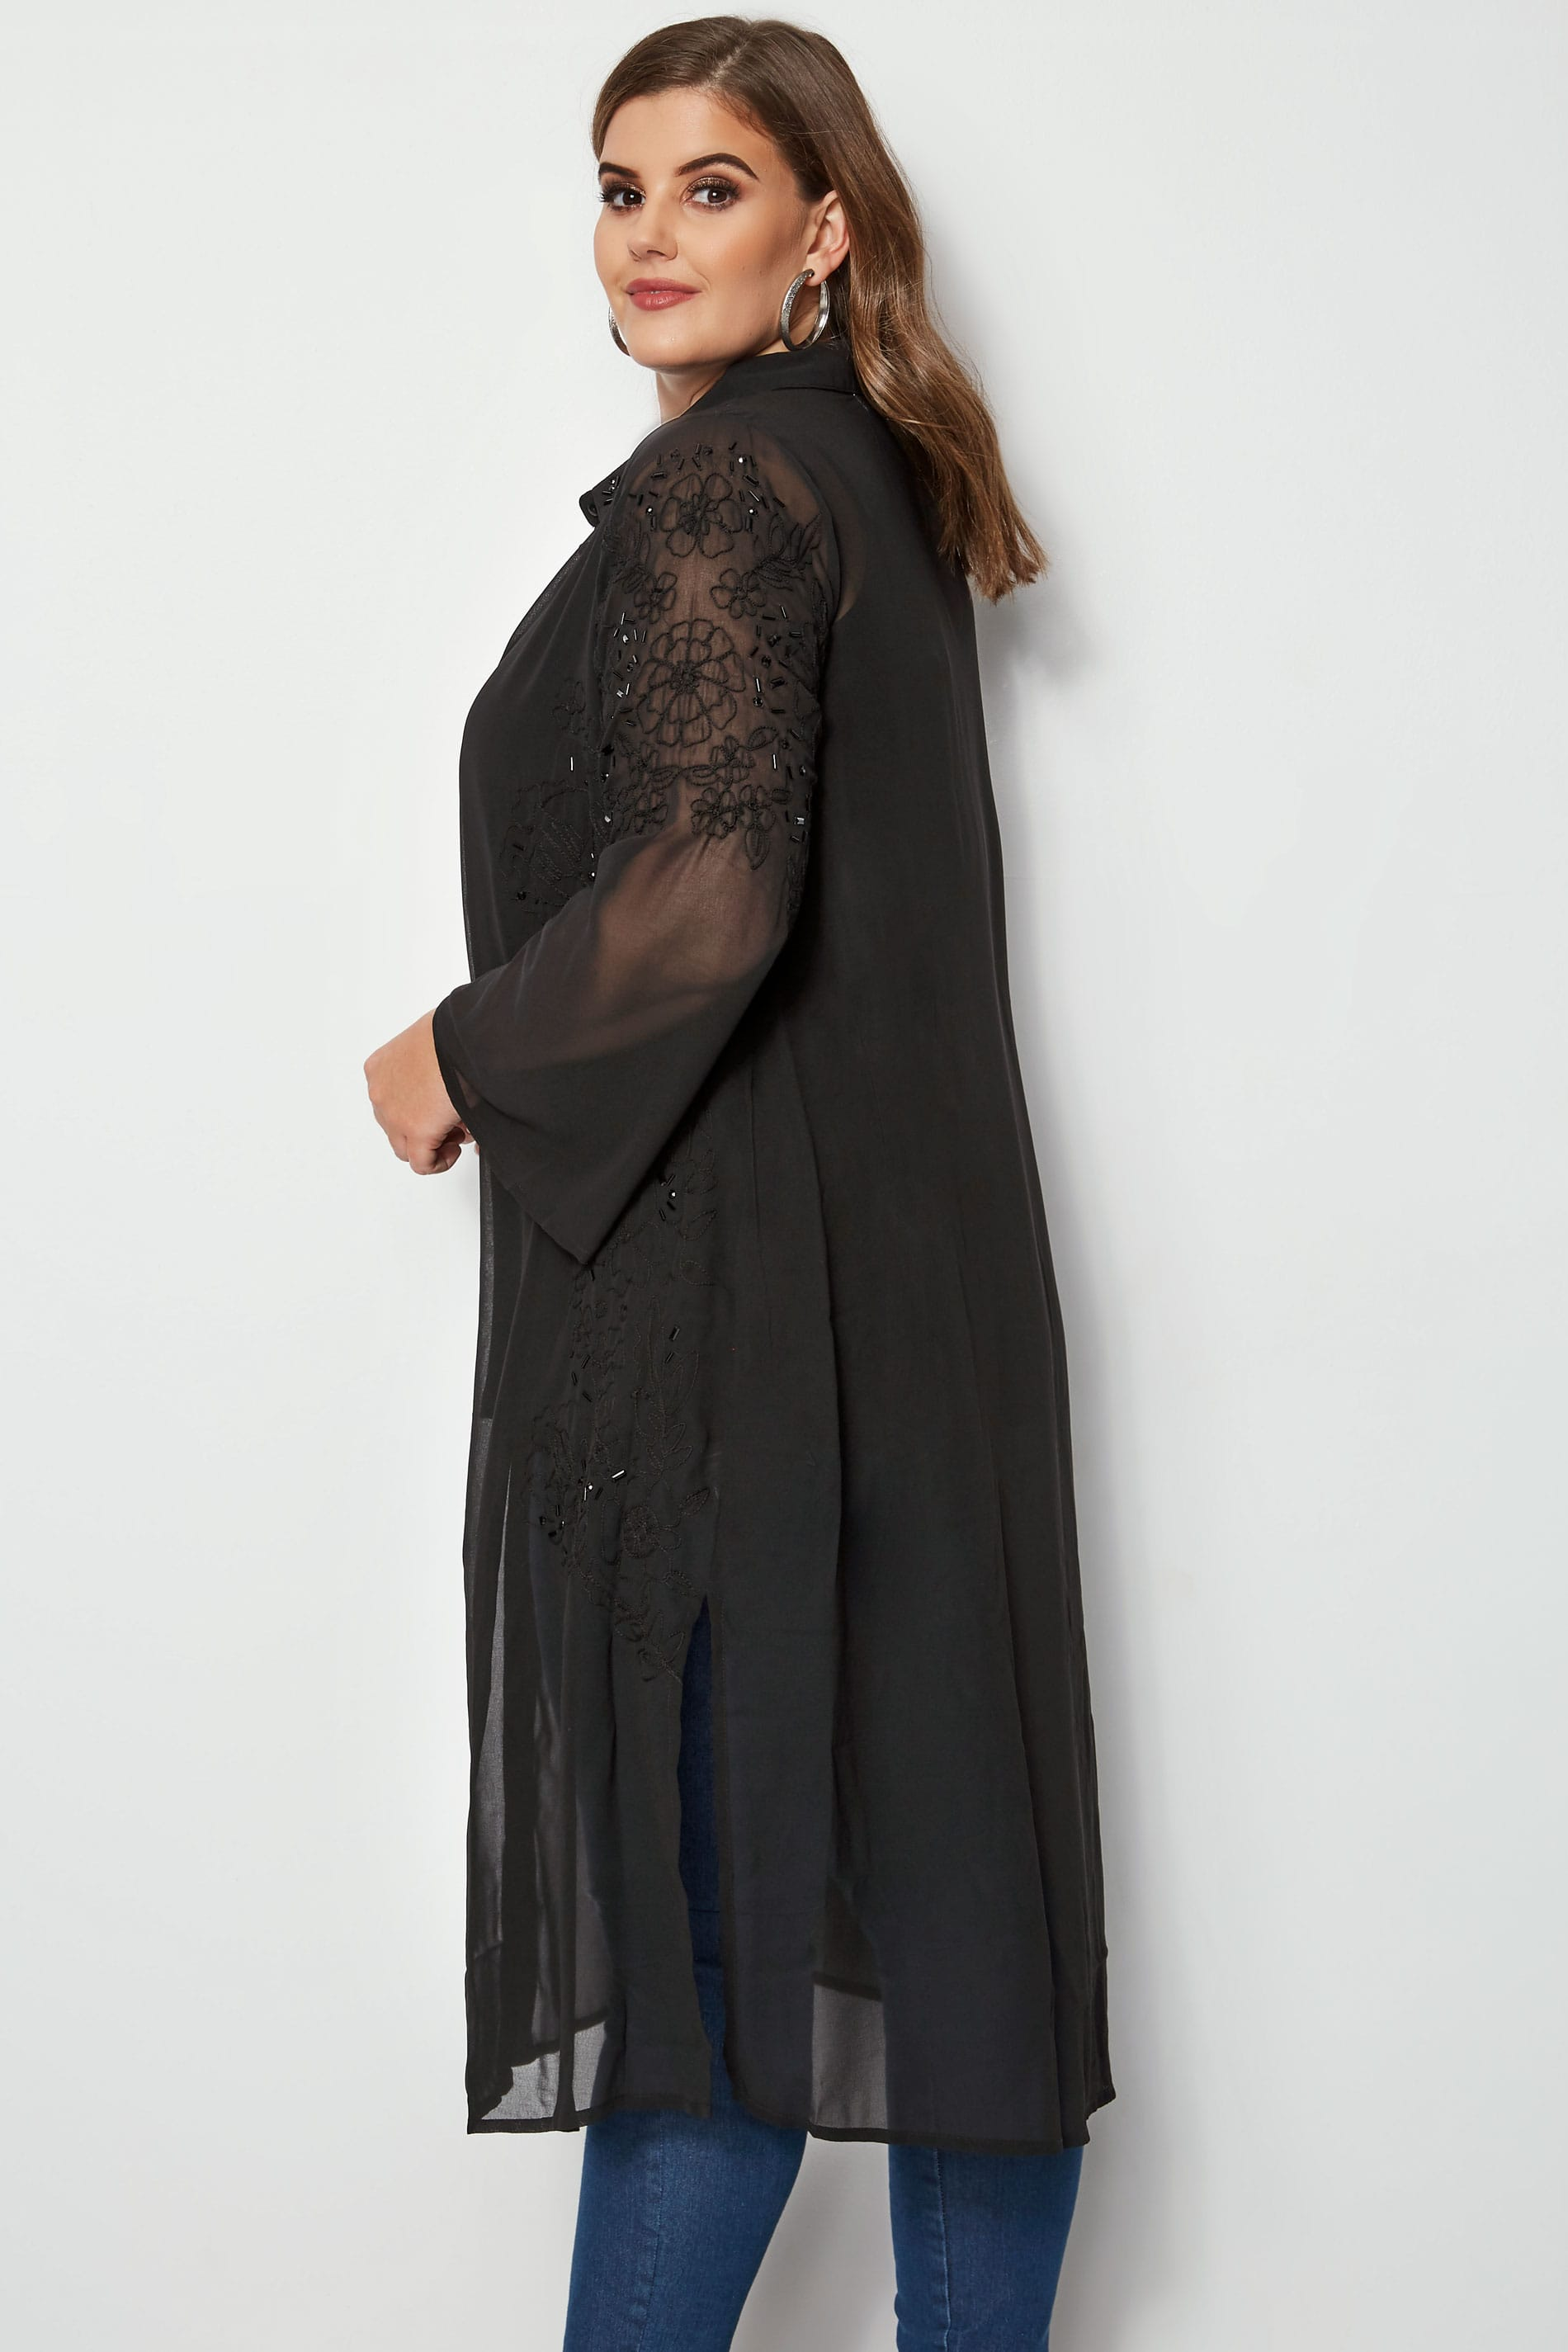 c738585222 YOURS LONDON Black Embellished   Embroidered Maxi Shirt